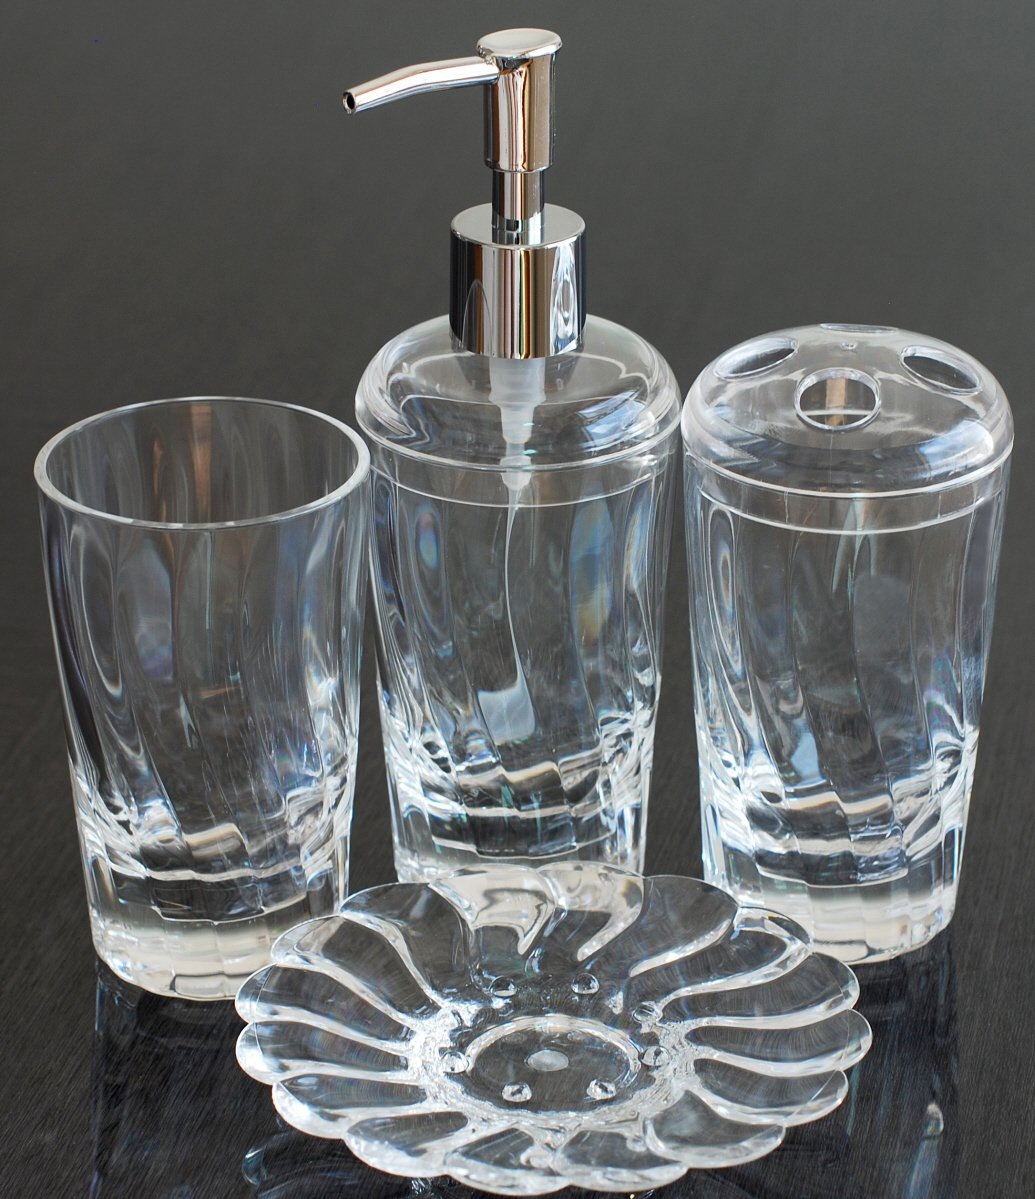 GQ QG 4 pc Crystal Clear Acrylic Plastic Twist Bathroom Accessory Set - Lotion Dispenser, Toothbrush Holder, Soap Dish, Tumbler BTTW-CL - Made from acrylic to provide glass-like clarity and greater durability. Soap/Lotion Dispenser with Chrome Finish Pump Head. Mouth Diameter of Toothbrush Holder: 2-7/8 inch. - bathroom-accessory-sets, bathroom-accessories, bathroom - 71APydd8DRL -